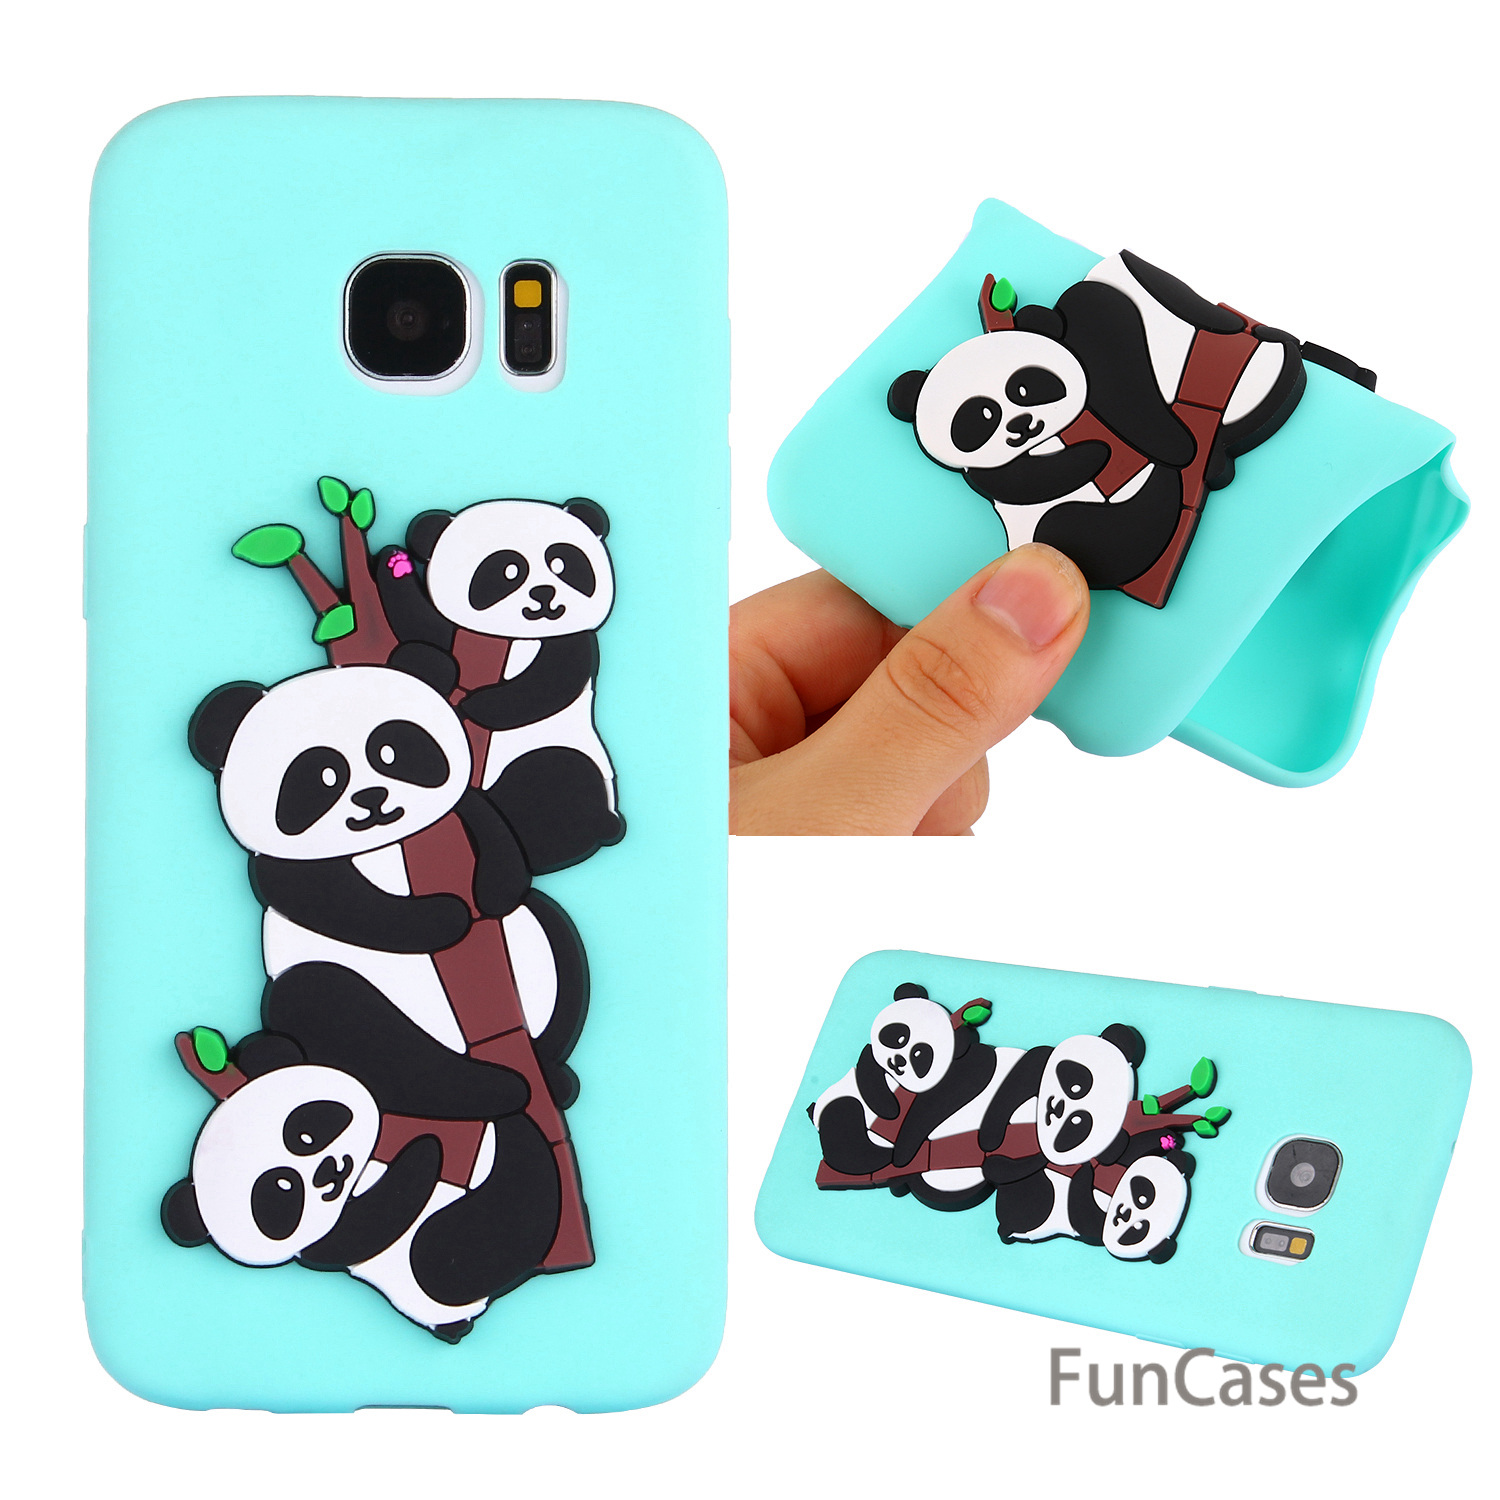 Lovely Panda Case sFor Cute Samsung S7 Edge Soft Silicone Back Cover Back Vintage Mobile Phone Case Samsung Galaxy S7 Edge